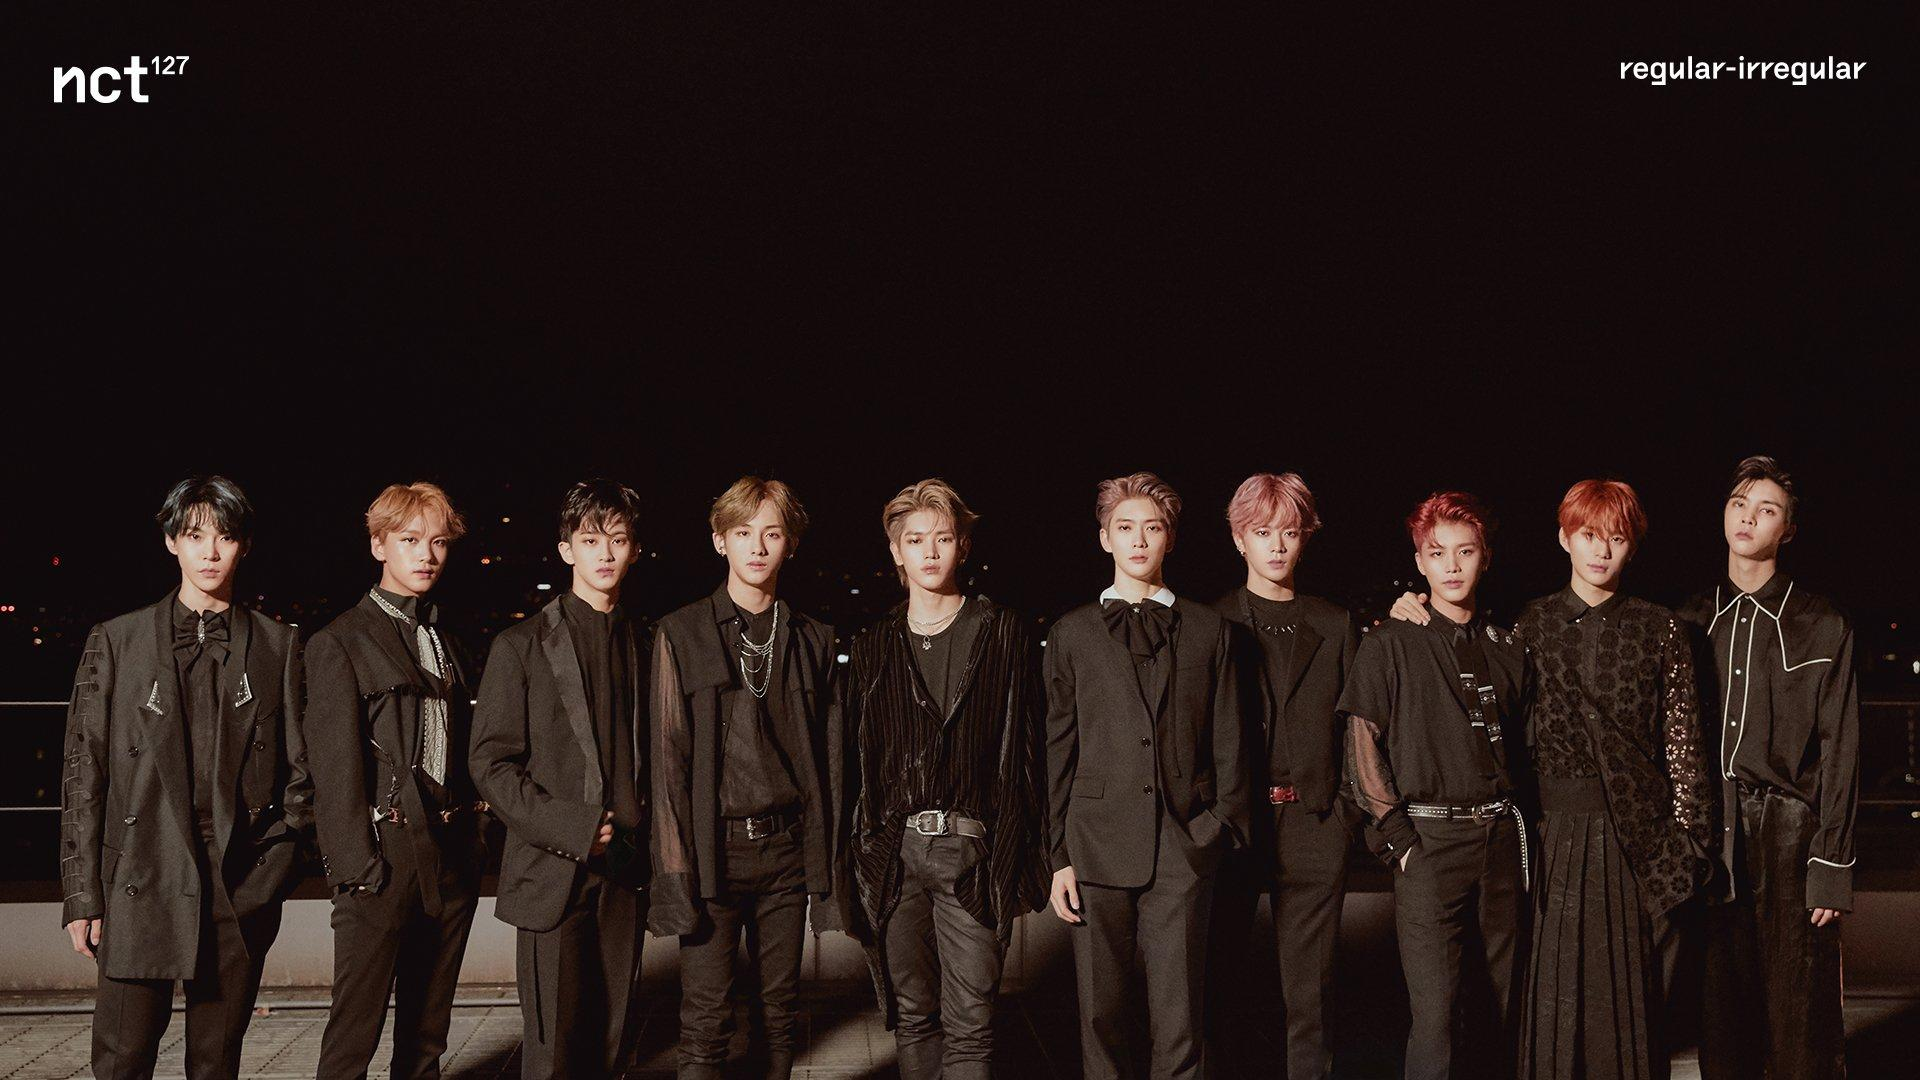 You can save the nct dream desktop wallpaper aesthetic here. ATEEZ Desktop Wallpapers - Wallpaper Cave